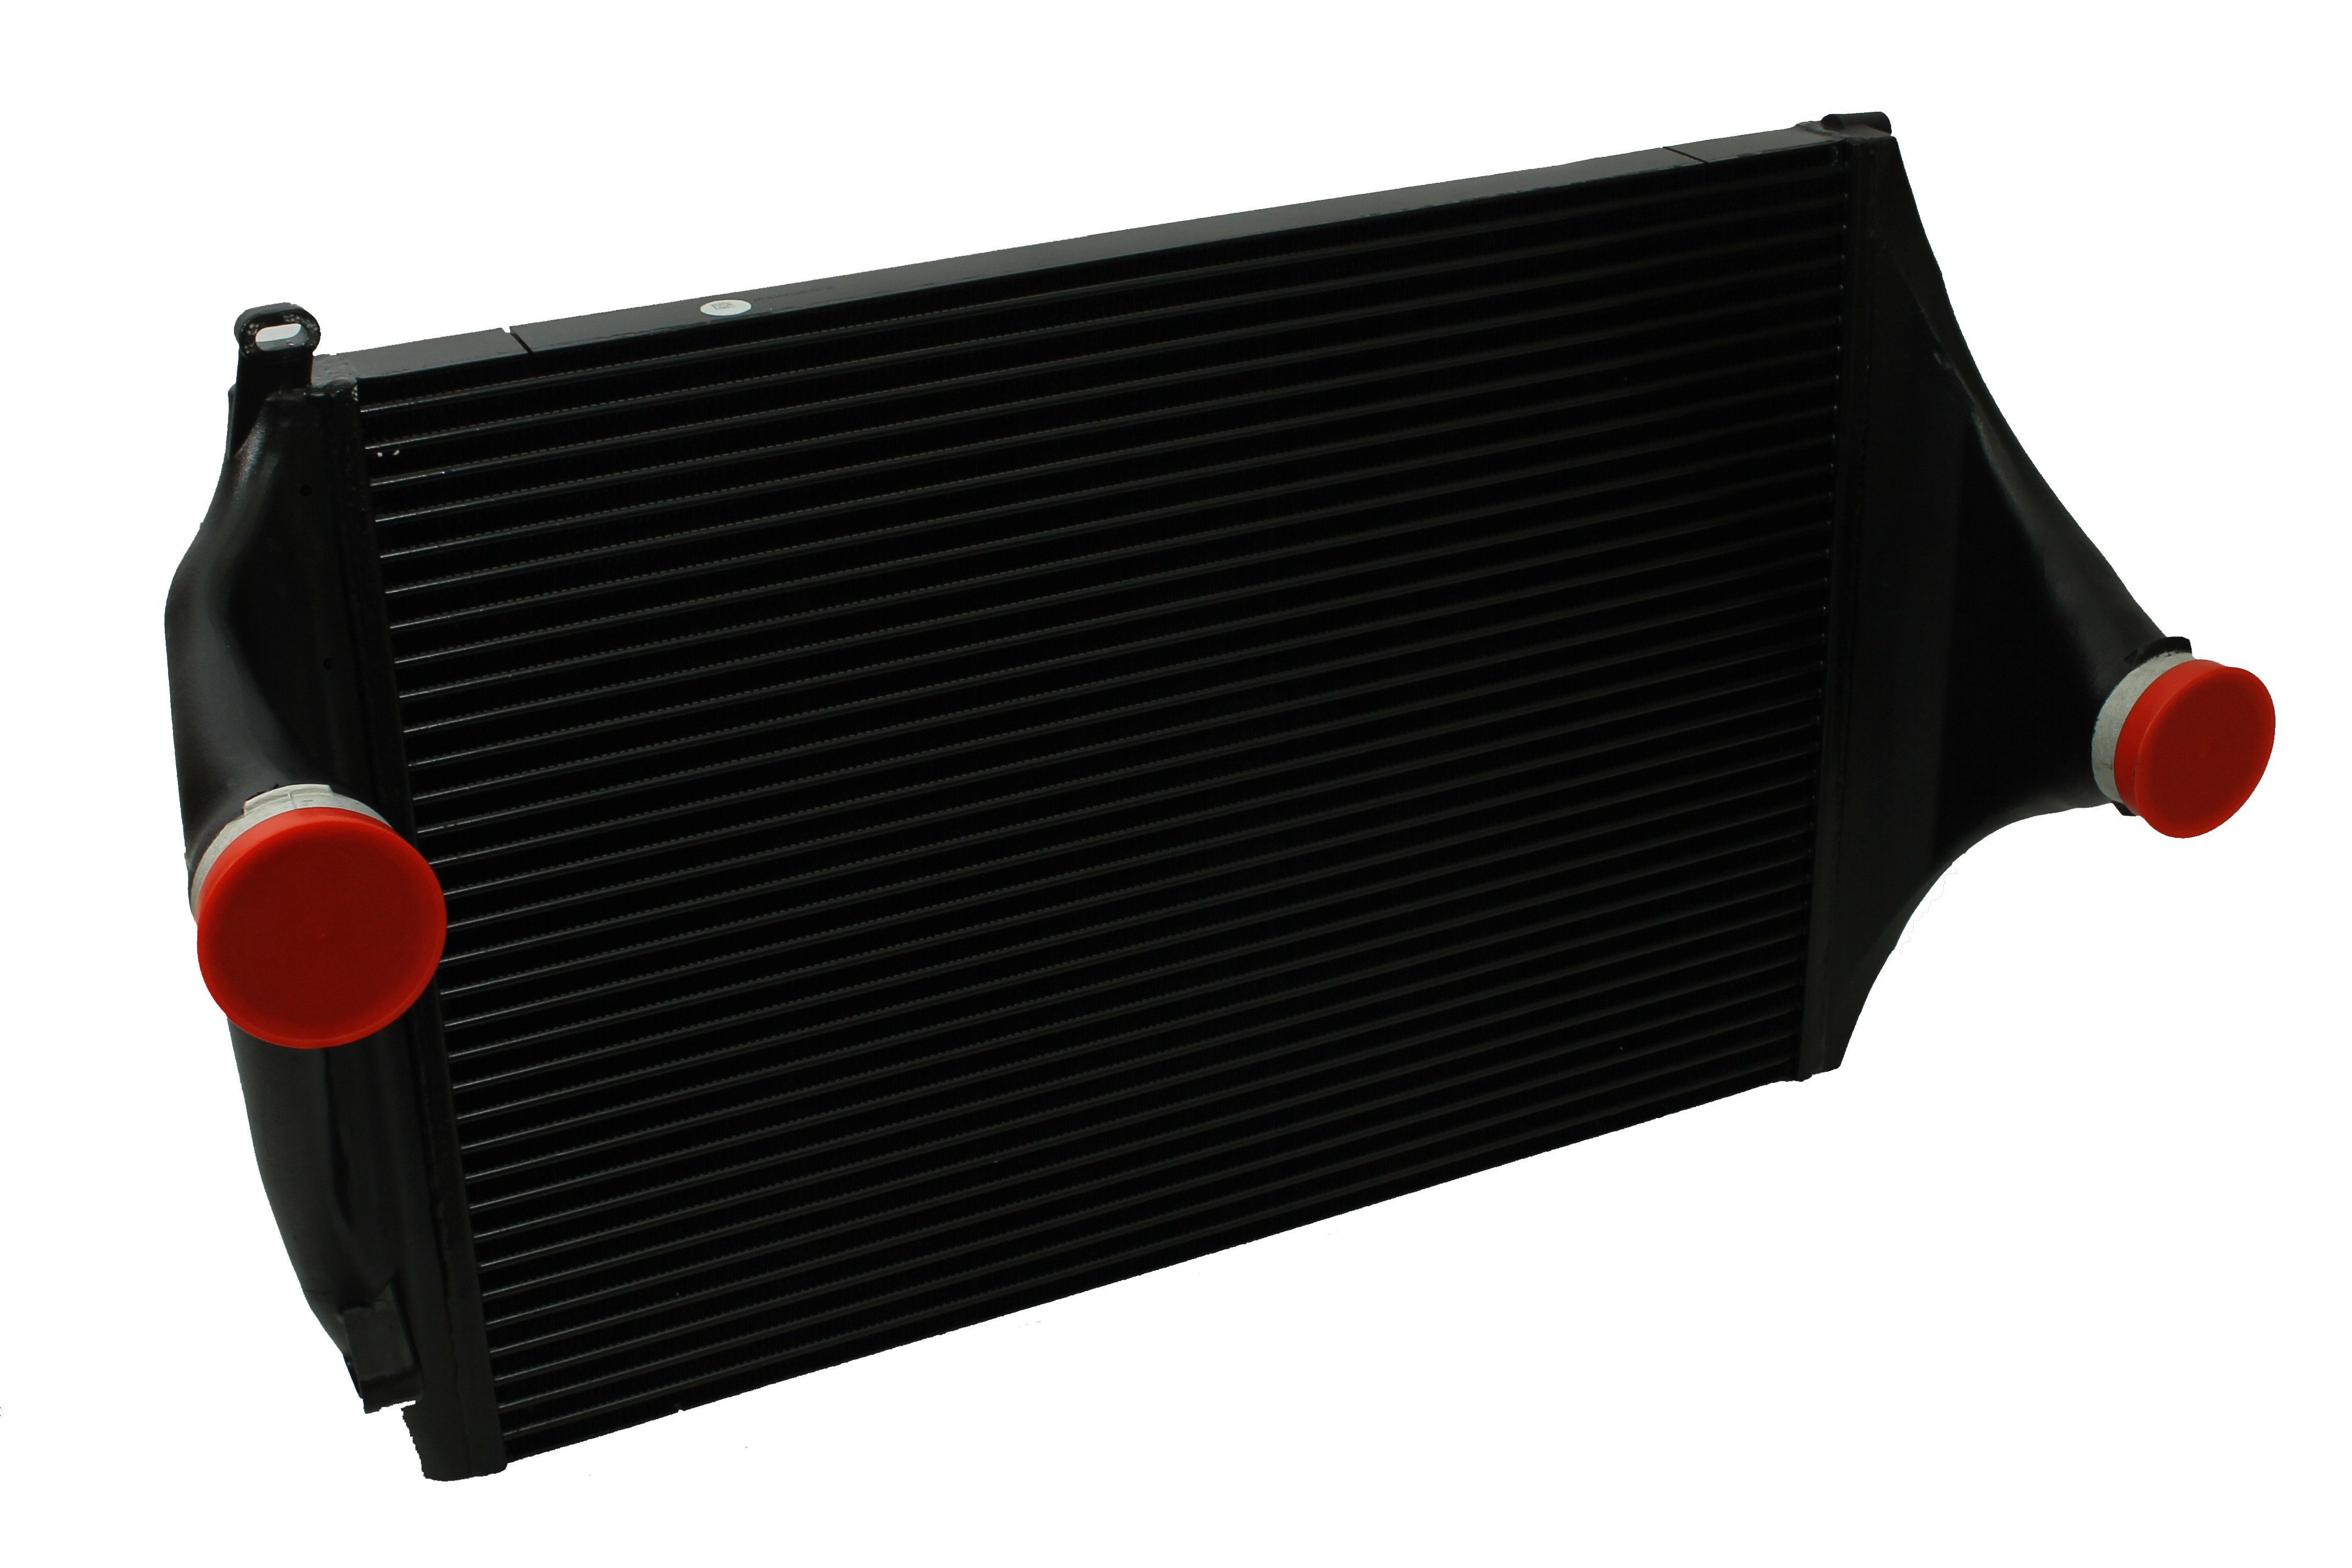 FREIGHTLINER | BAR & PLATE CHARGE AIR COOLER:2003-2007 FREIGHTLINER CENTURY, COLUMBIA AND M2 MODELS